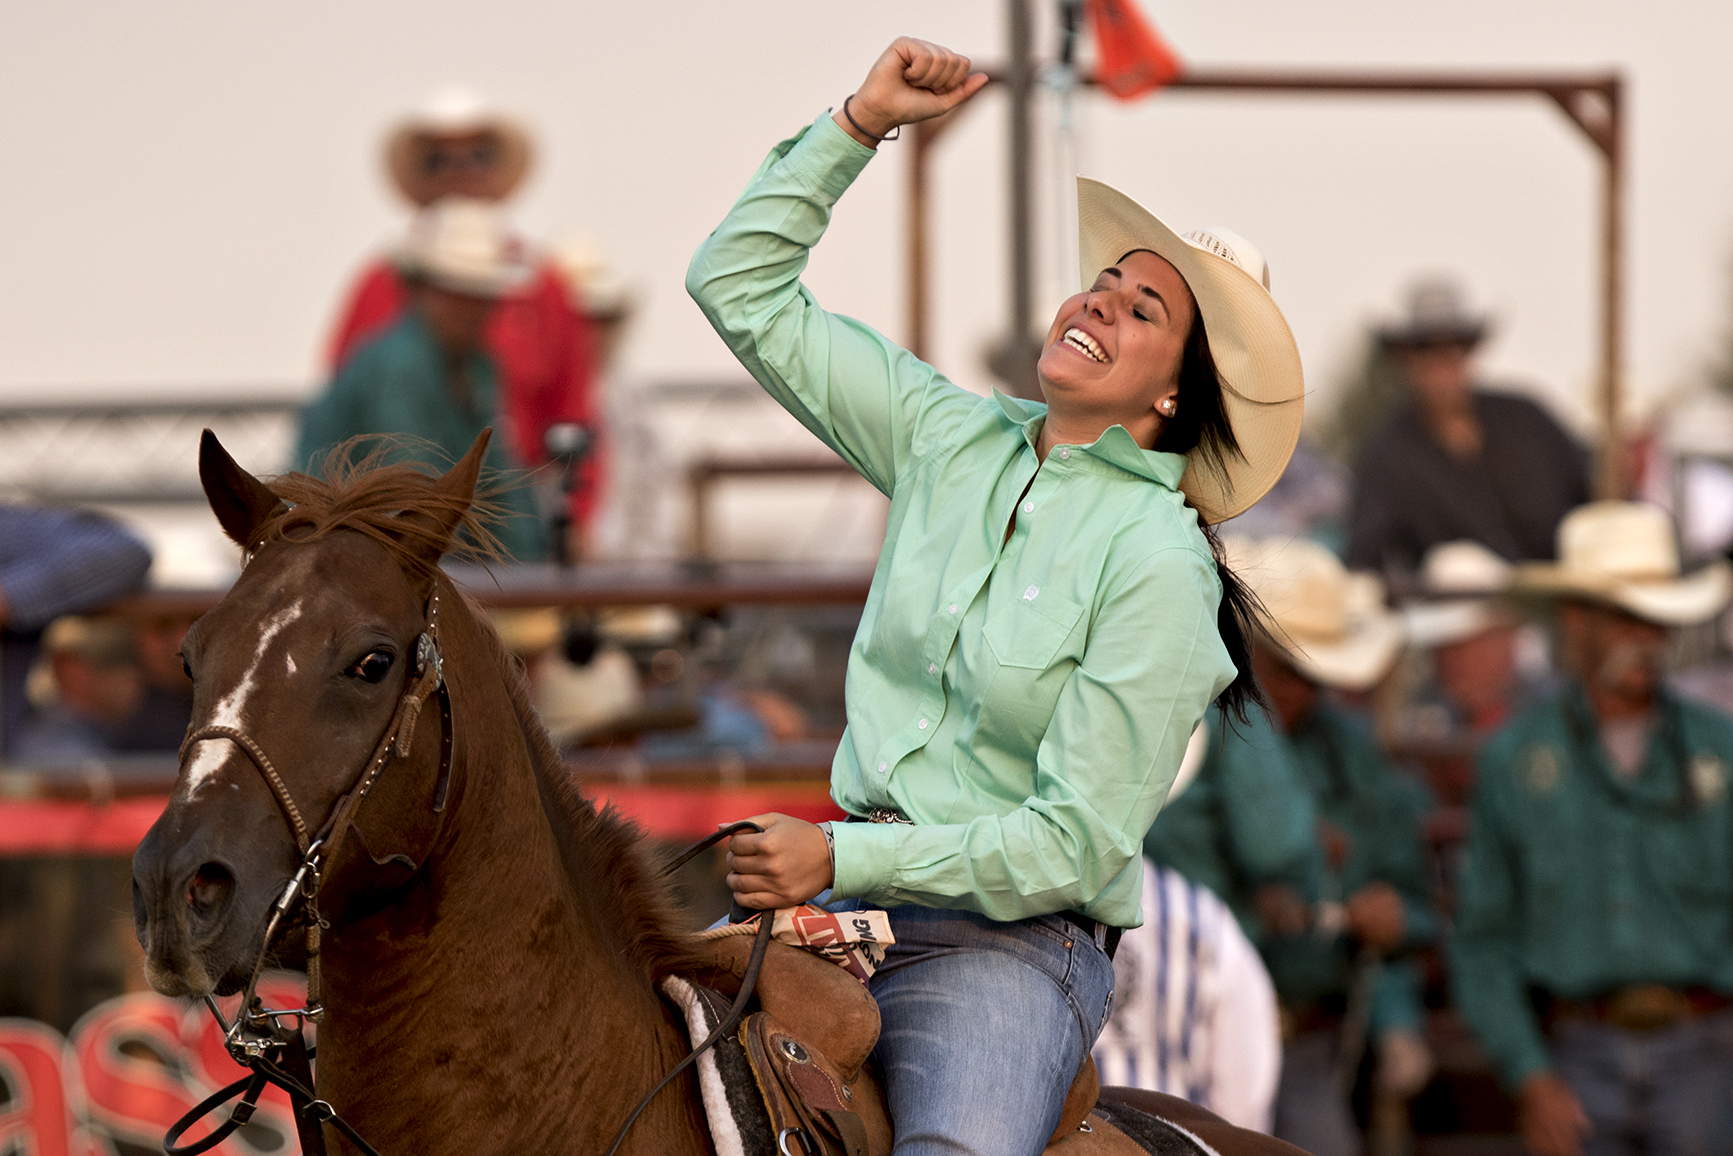 Virginia cowgirl Sarah Angelone celebrates after wining first overall in the breakaway roping at the short go of the 2016 National High School Finals Rodeo at Cam-plex on Saturday, July 23, 2016.